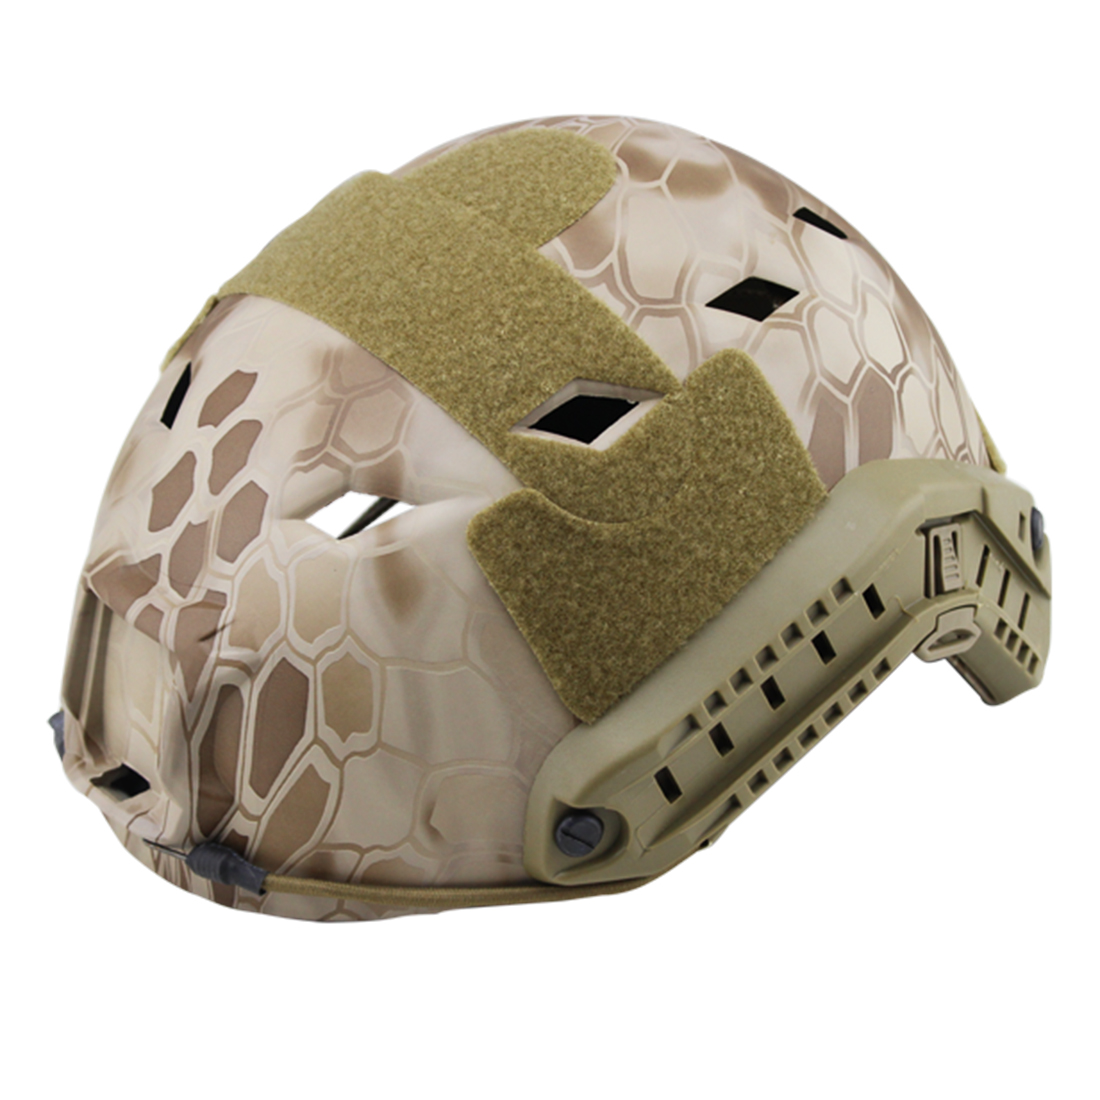 купить Surwish Camouflage Tactics Protective Helmet for FAST Pore-rhomb Helmet for Nerf/for Airsoft Outdoor Activity - CP по цене 3703.82 рублей